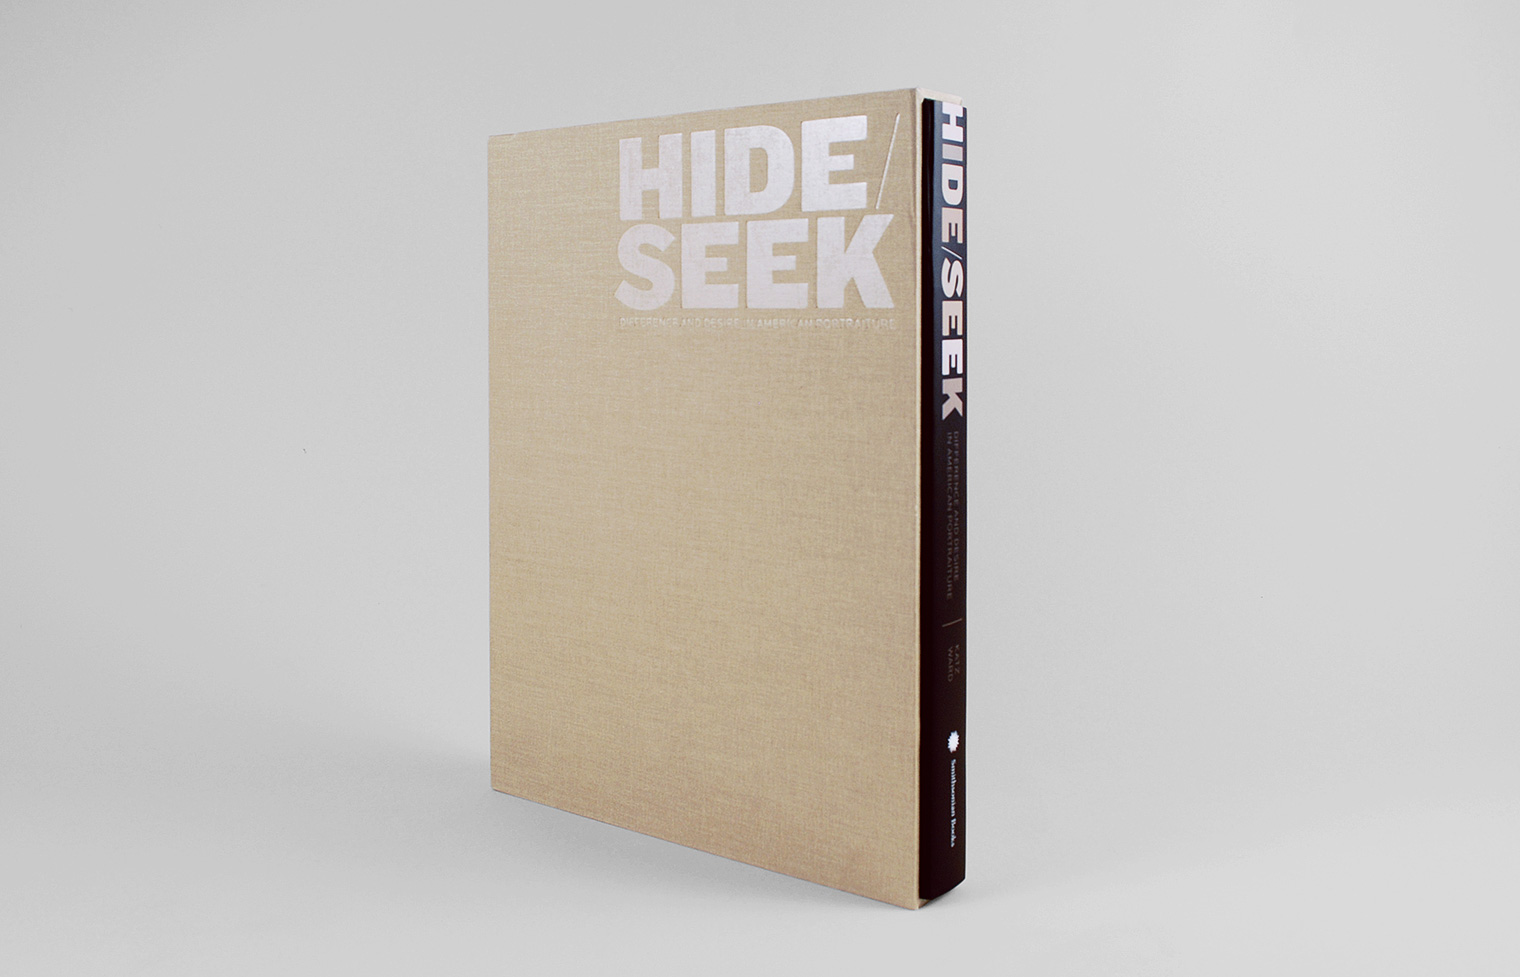 Special edition slipcase with title stamped with clear foil.